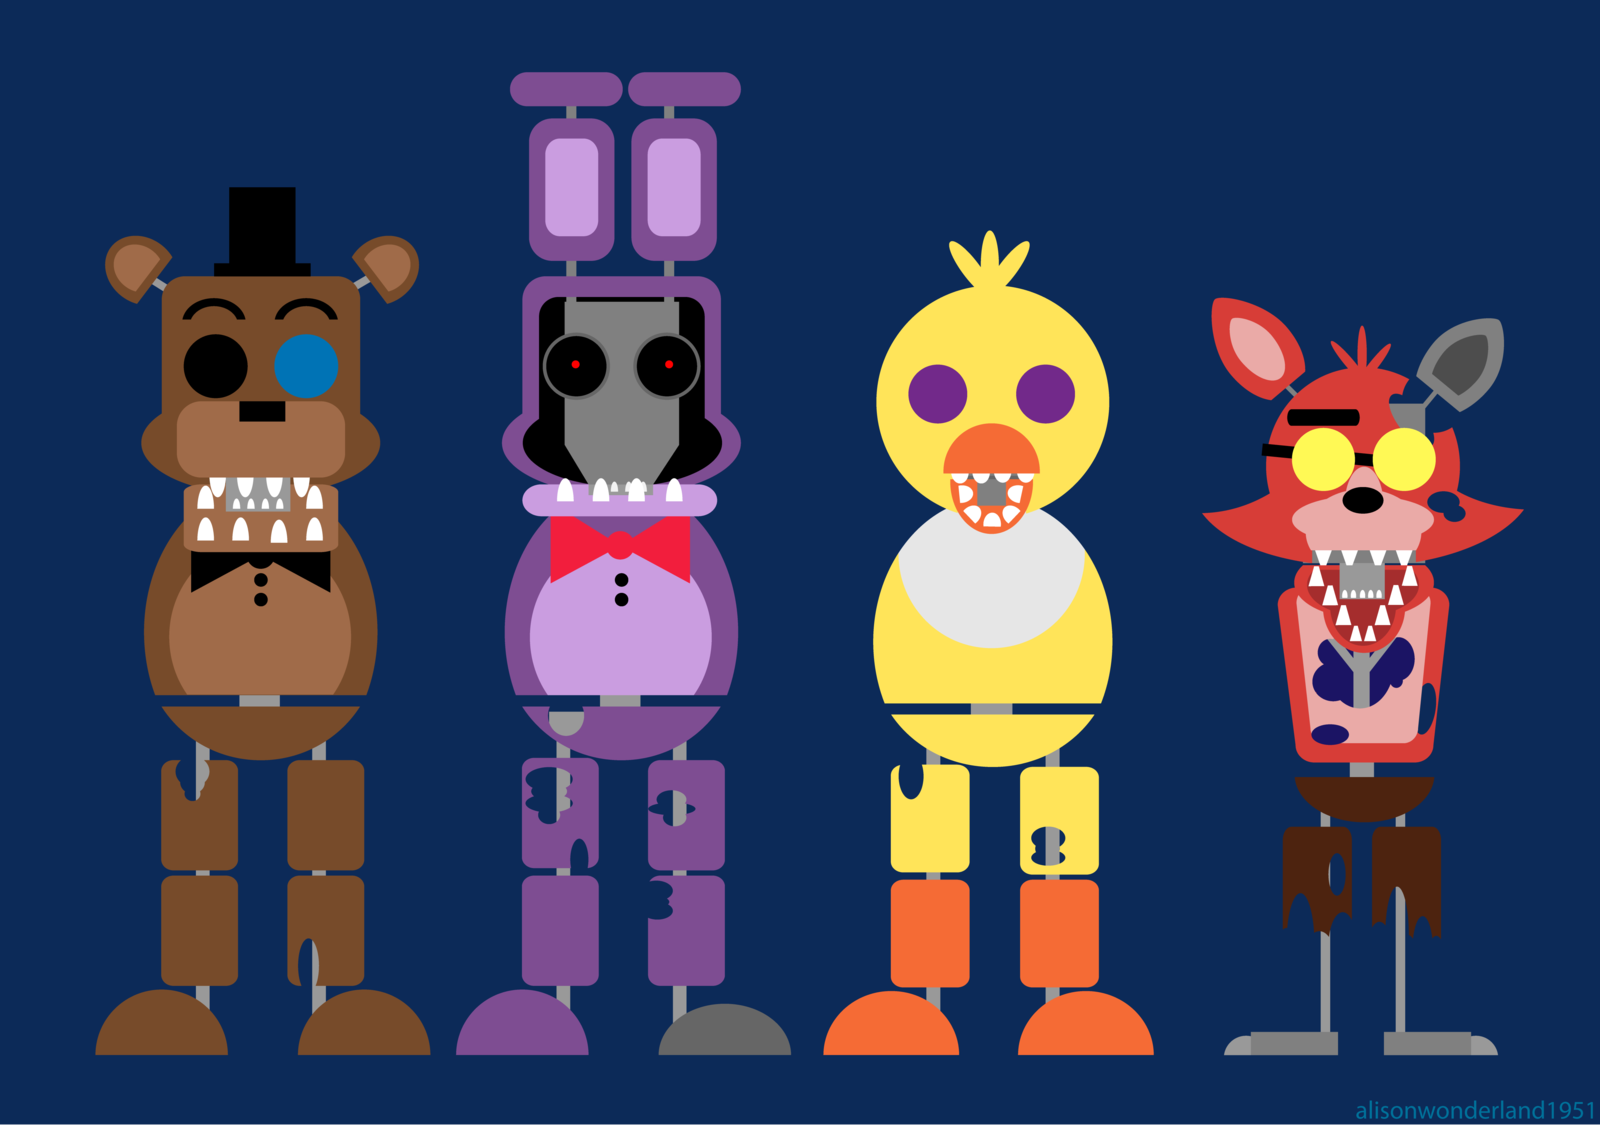 which withered animatronic are you